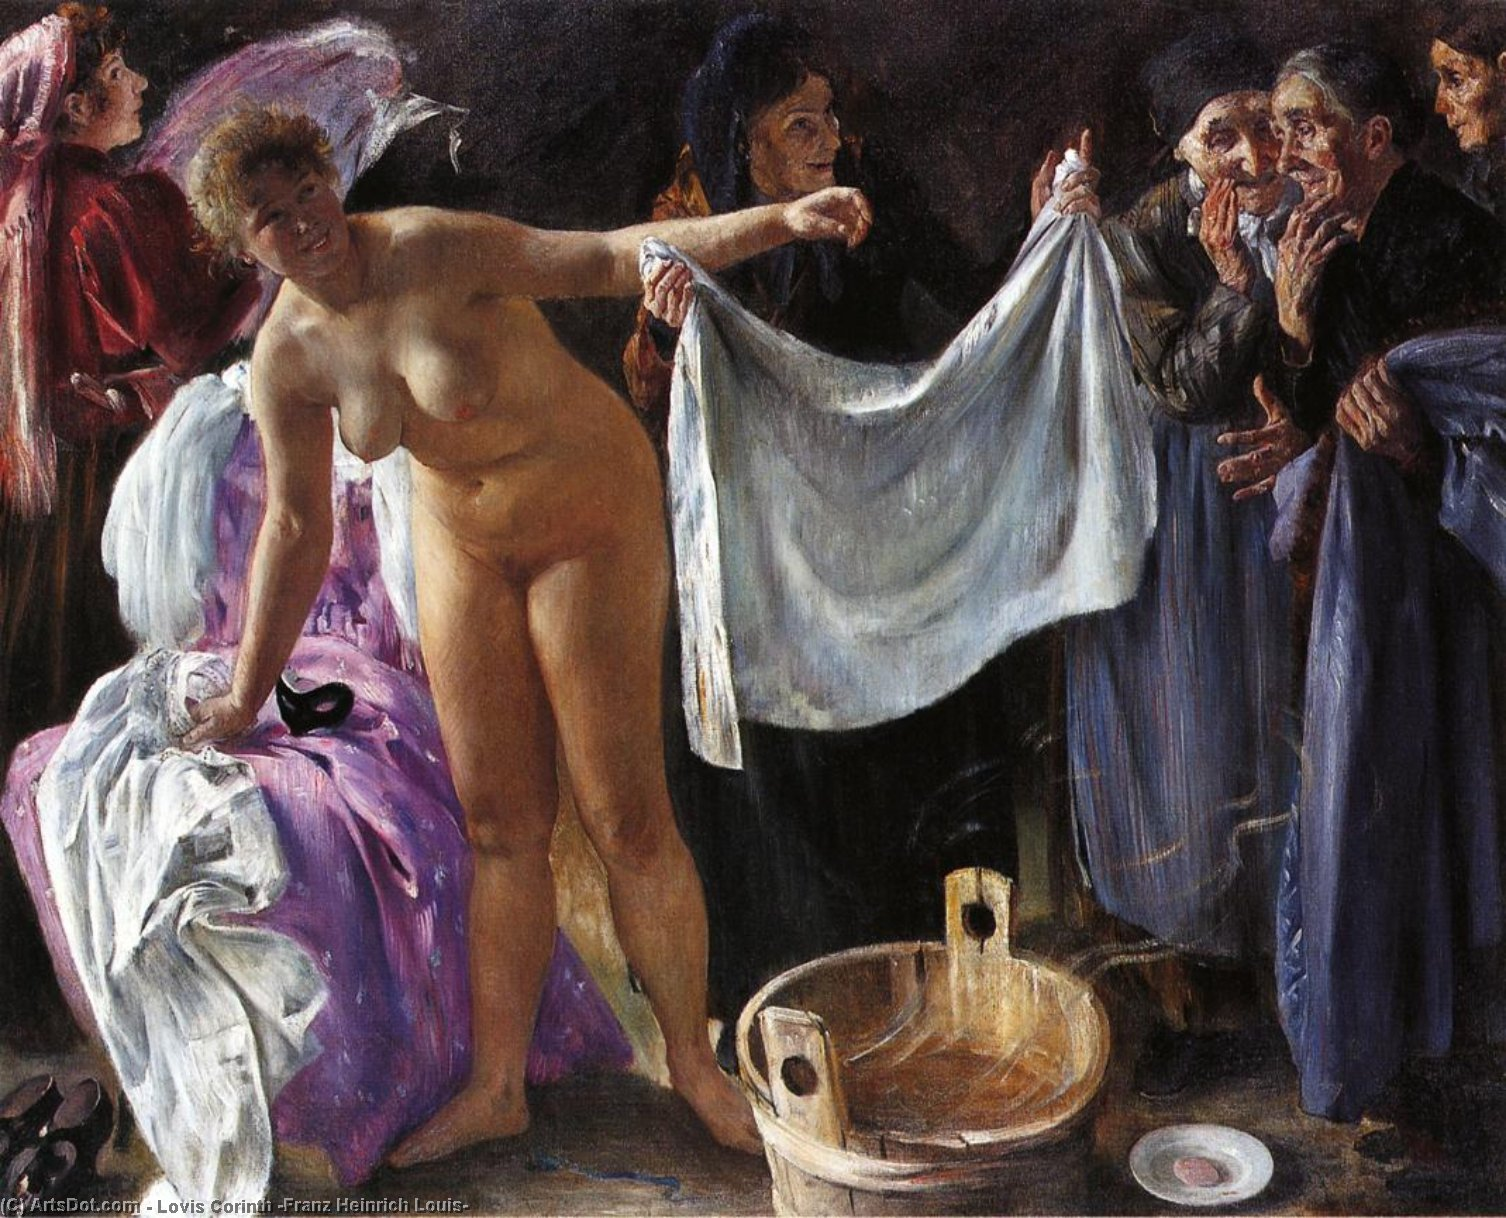 Witches, Oil On Canvas by Lovis Corinth (Franz Heinrich Louis) (1858-1925, Netherlands)